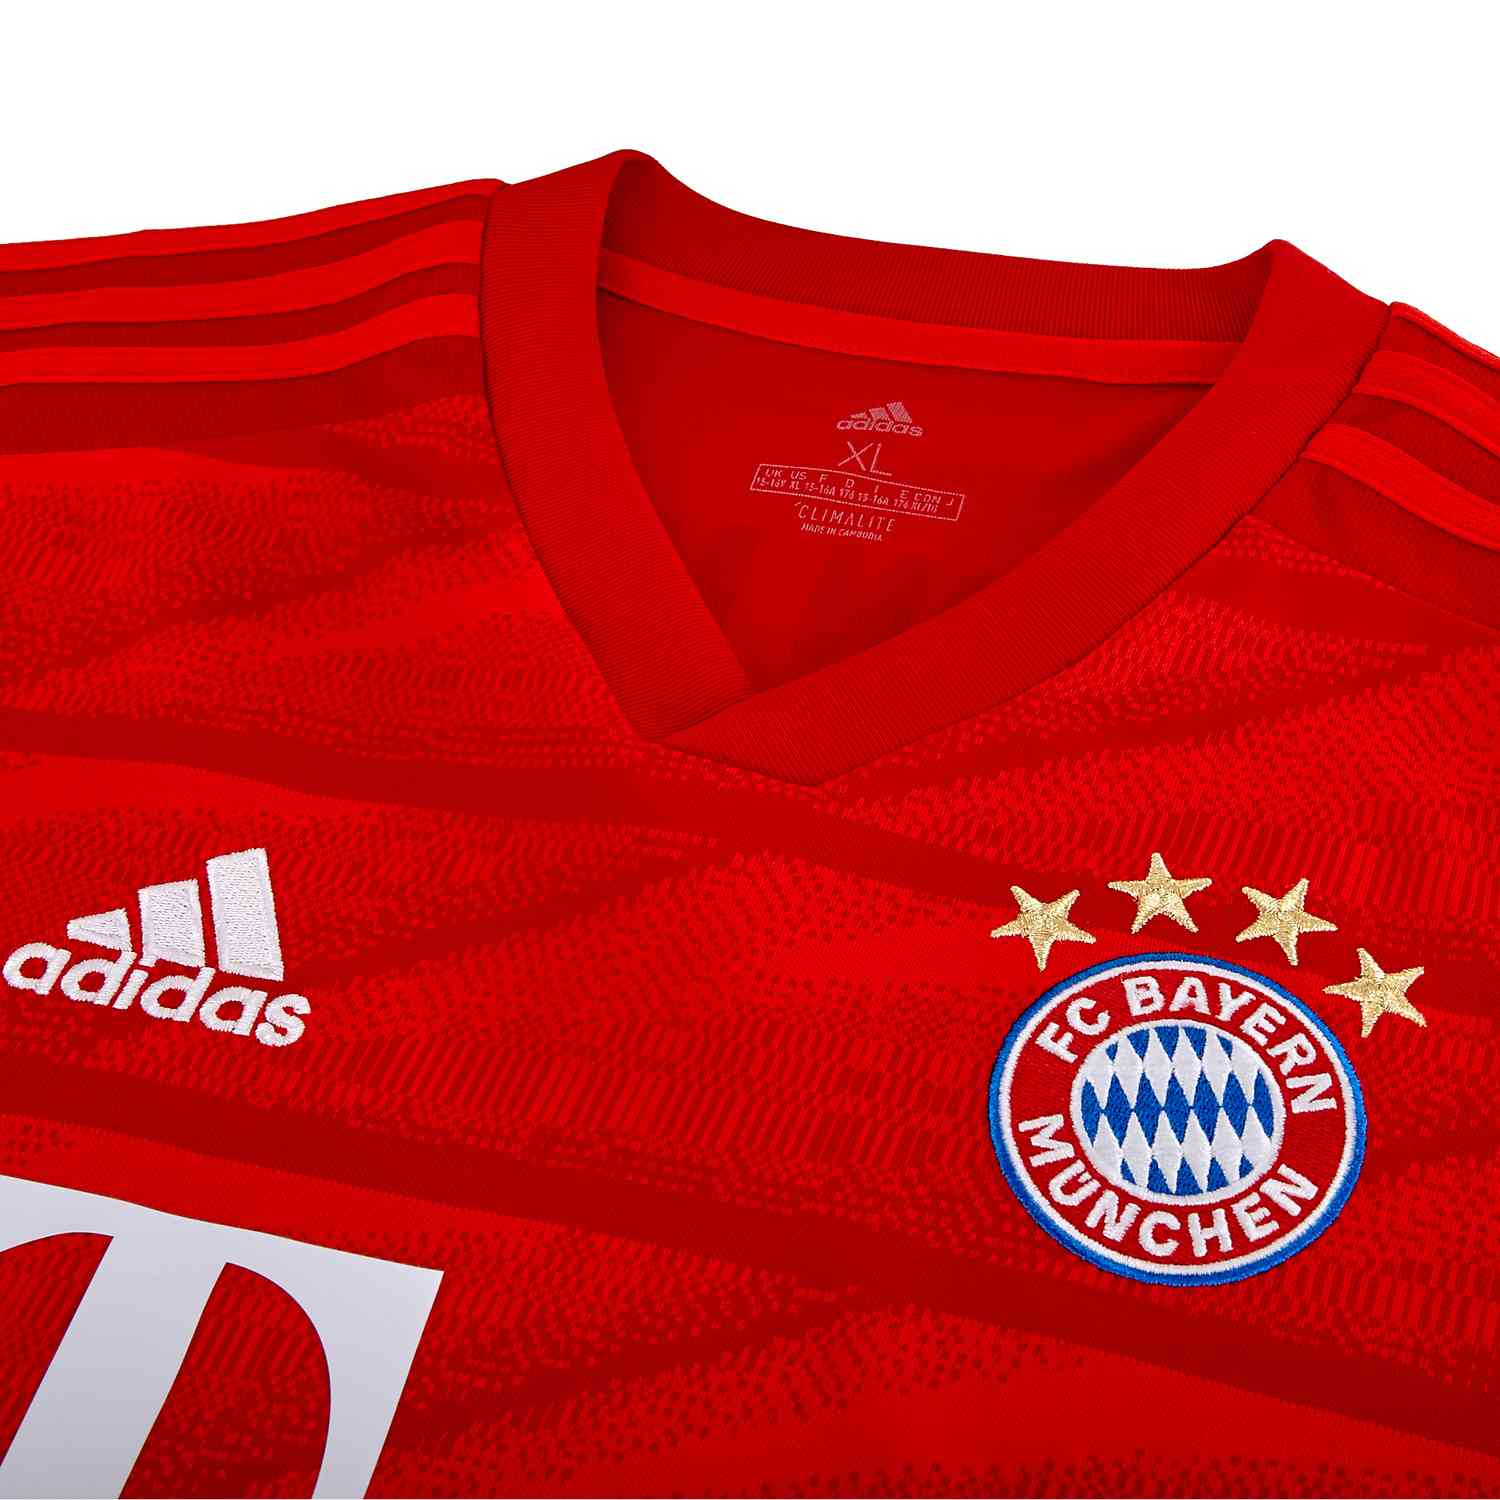 huge selection of f828f 8fb31 2019/20 Kids adidas Bayern Munich Home Jersey - Soccer Master